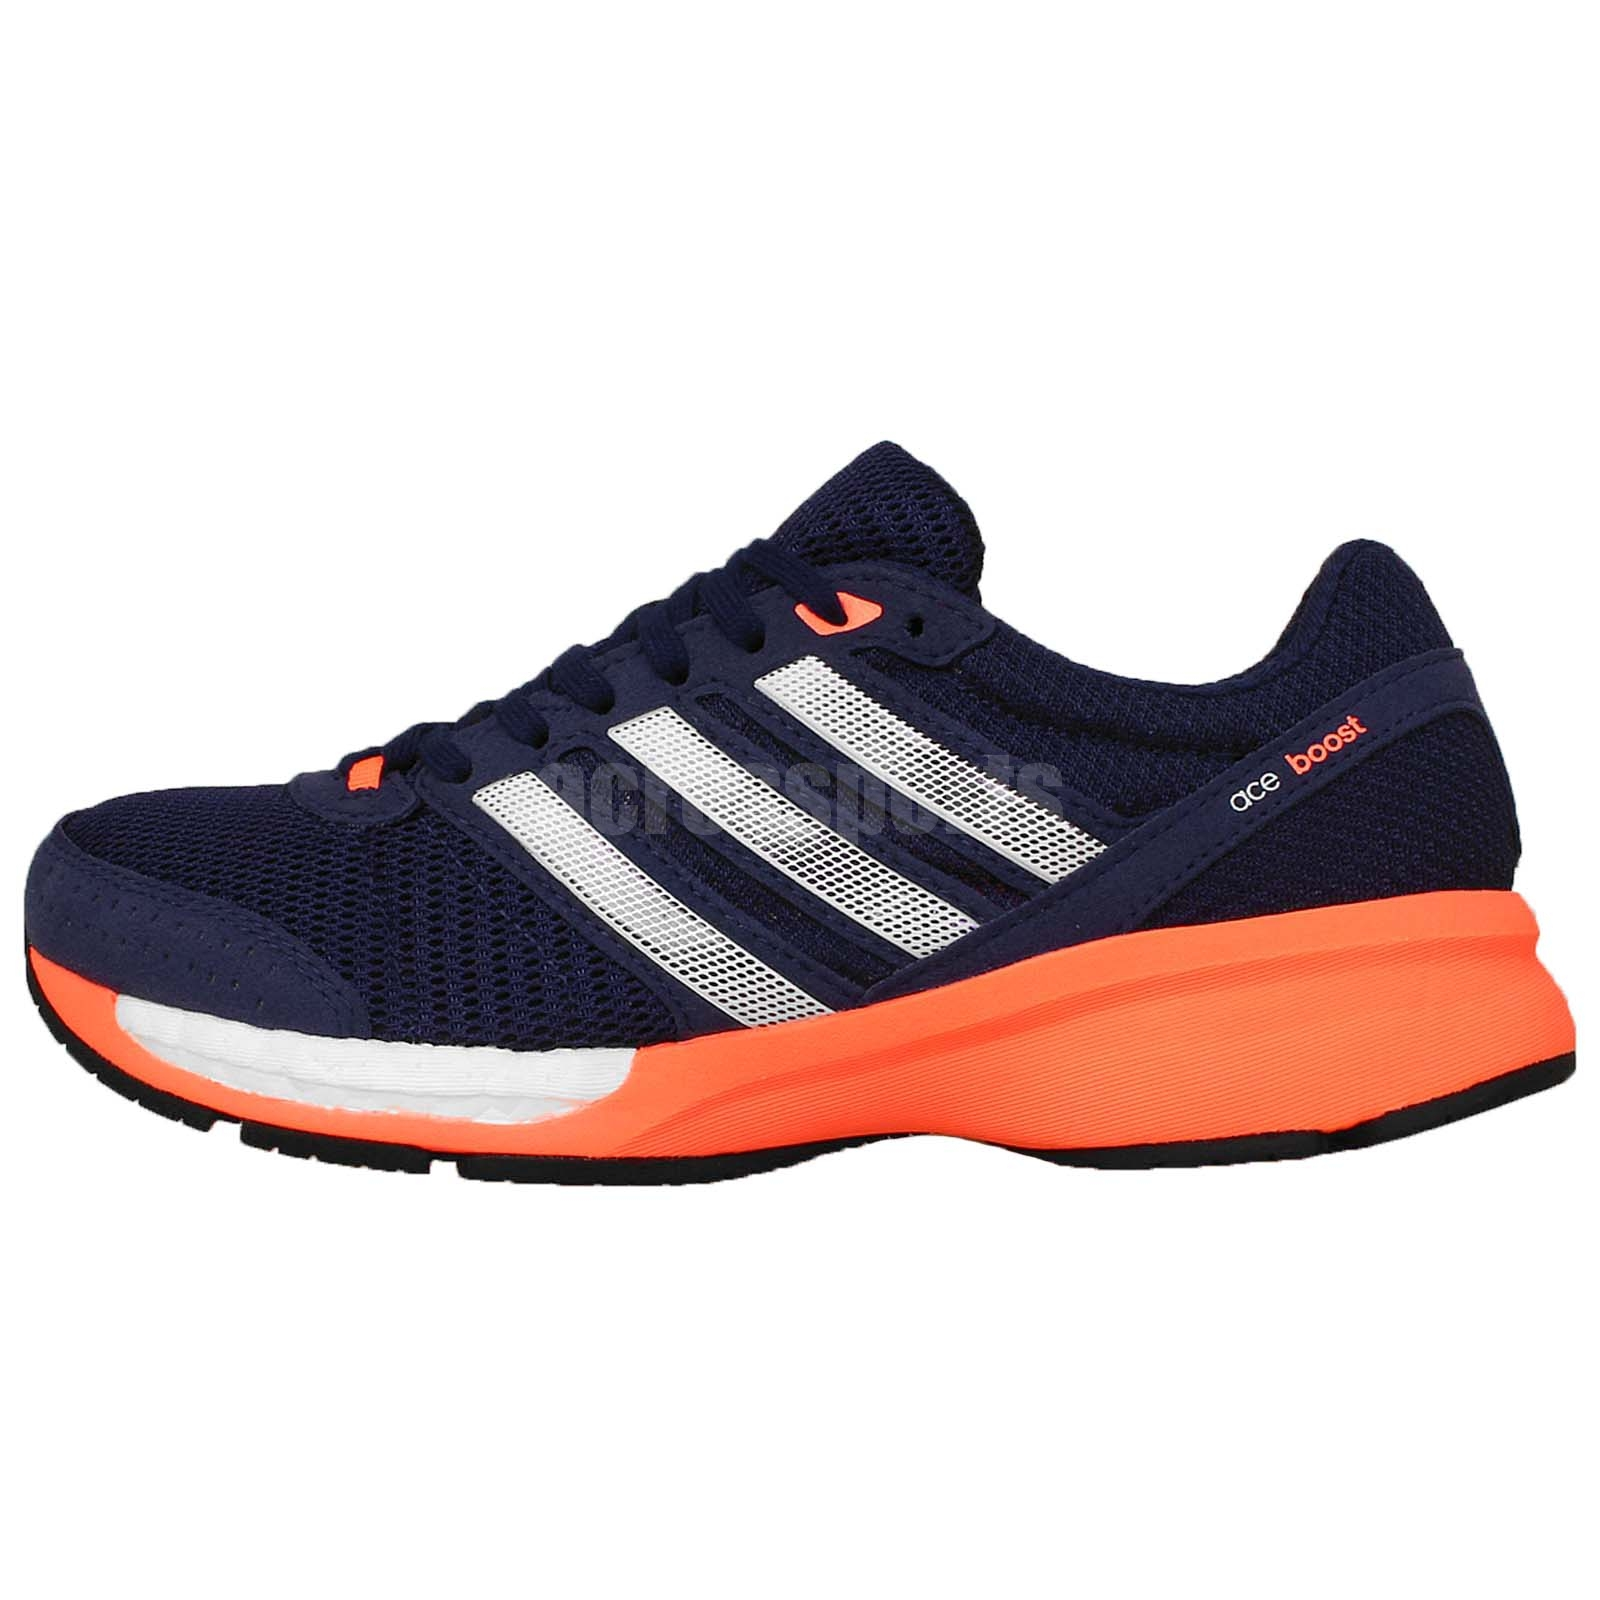 Creative  SPRINGBLADE Drive 2015 ADIDAS SPRINGBLADE DRIVE MENS RUNNING SHOES